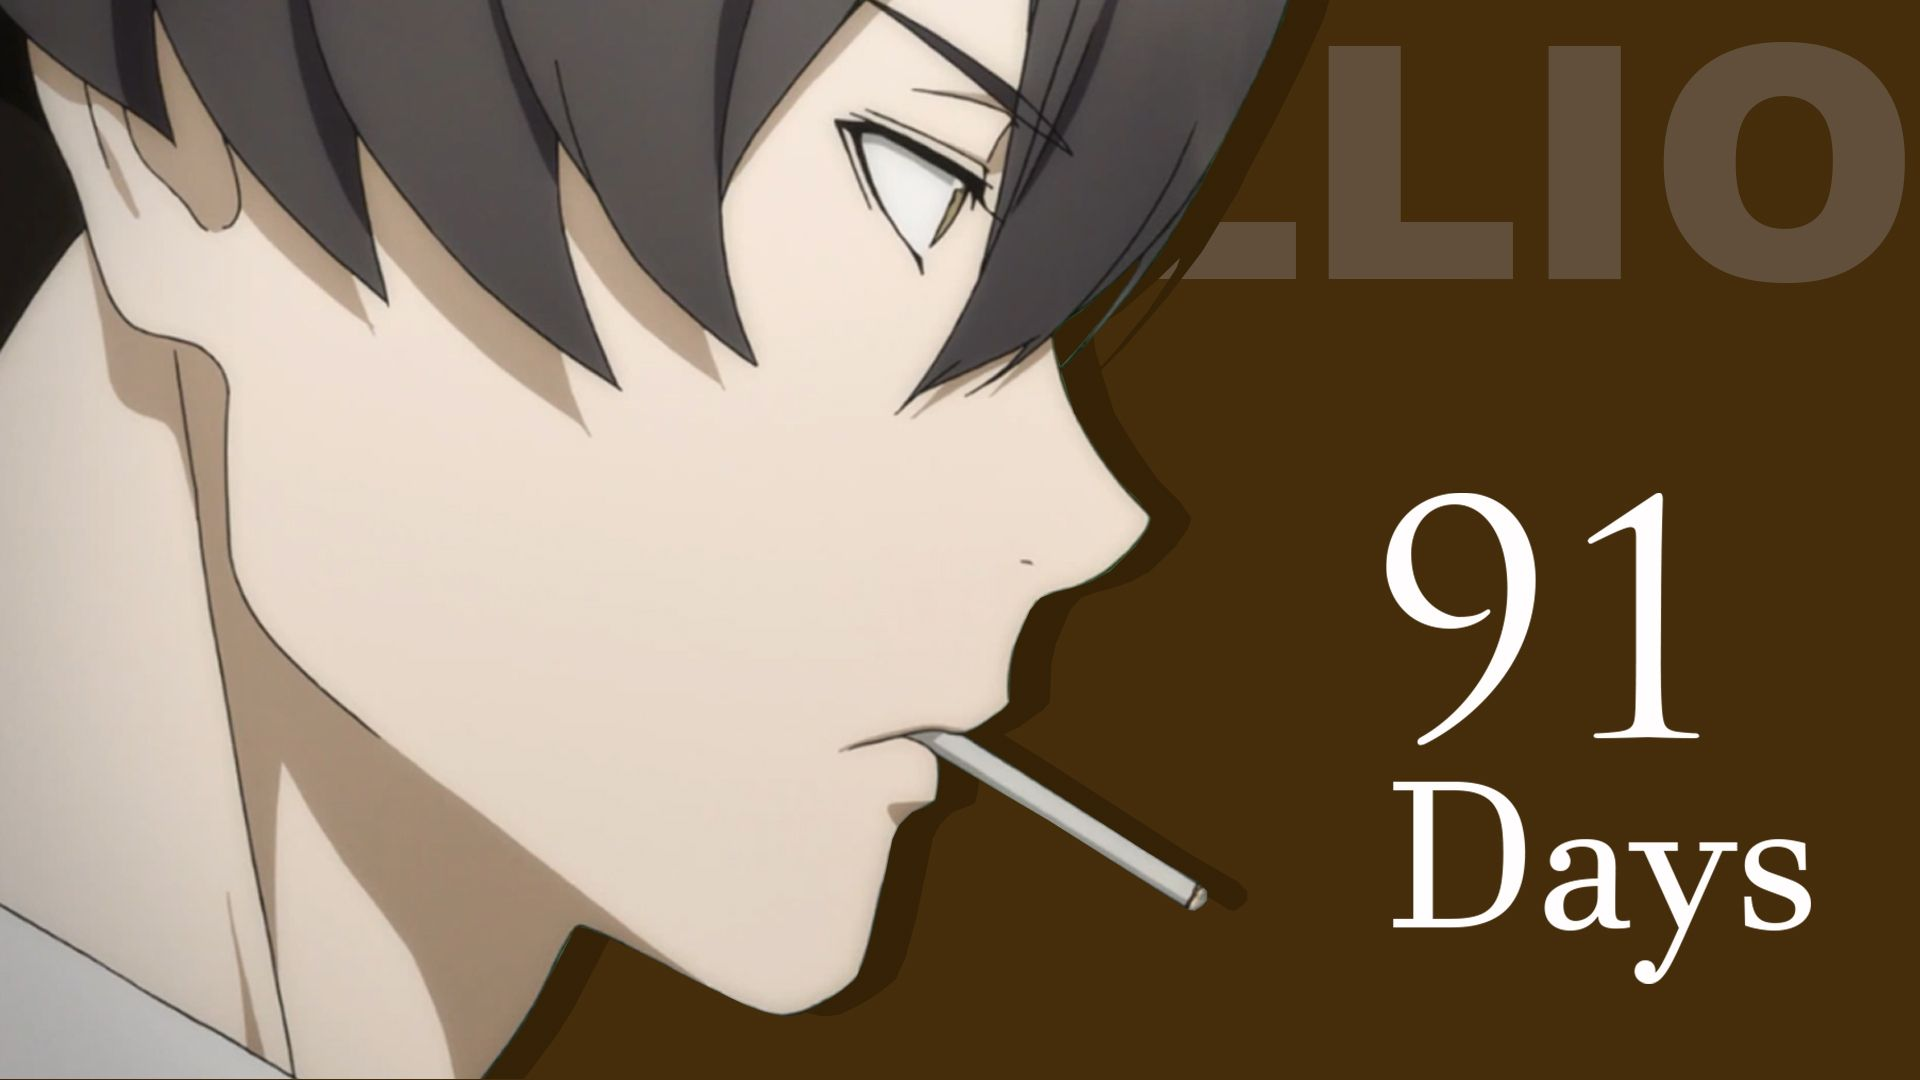 Anime 91 Days Best Wallpaper 91 Days Anime Weird Words